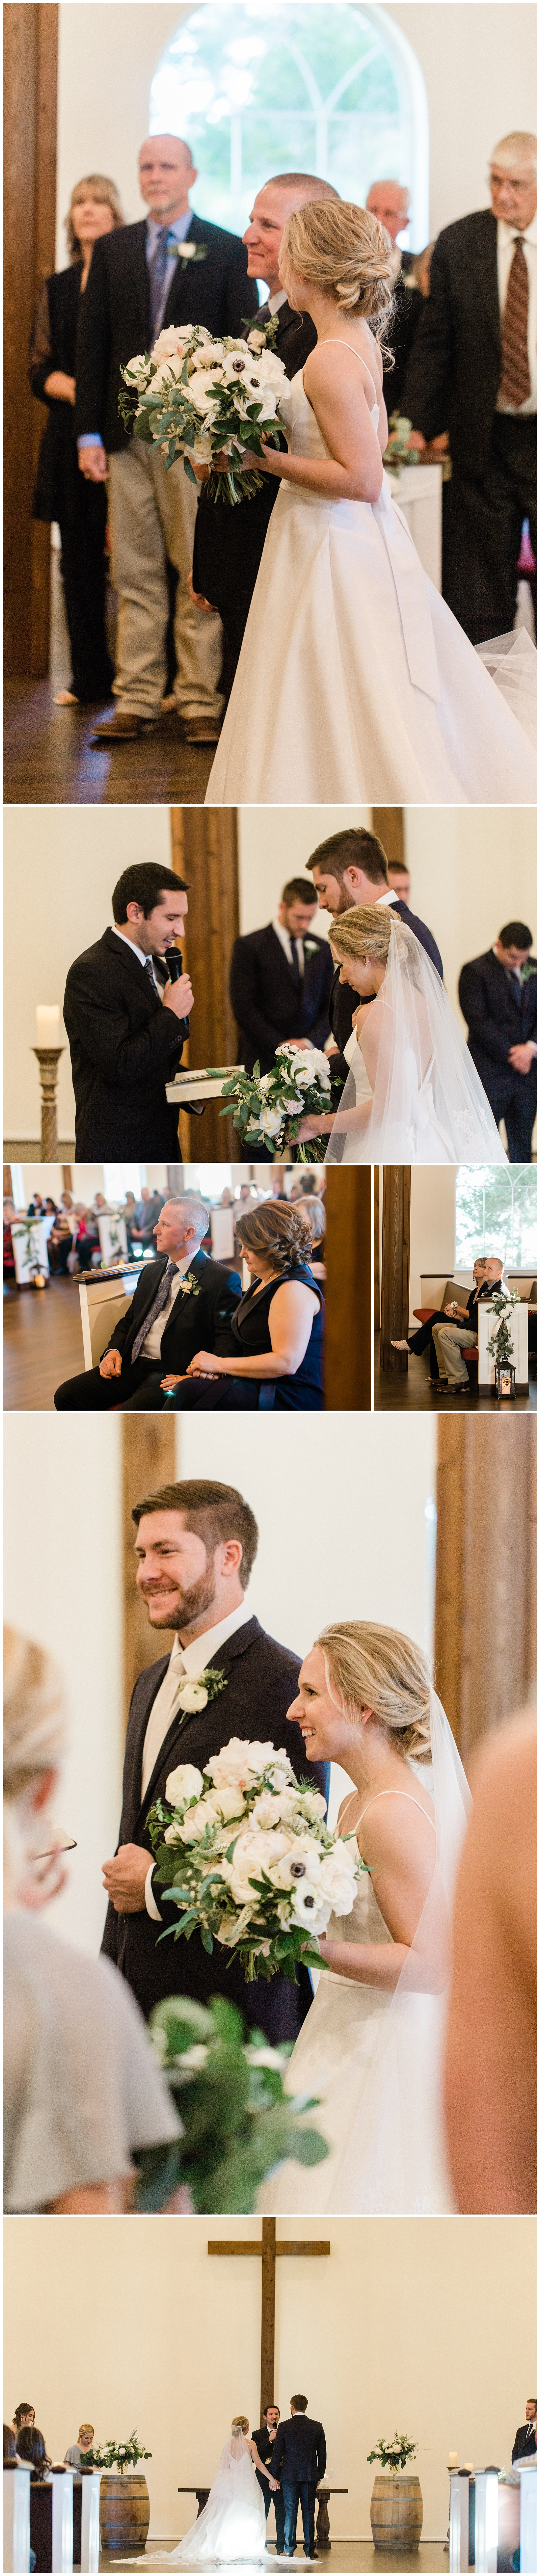 The_Vine_at_New_Ulm_Wedding_Kristina_Ross_Photography_0020.jpg